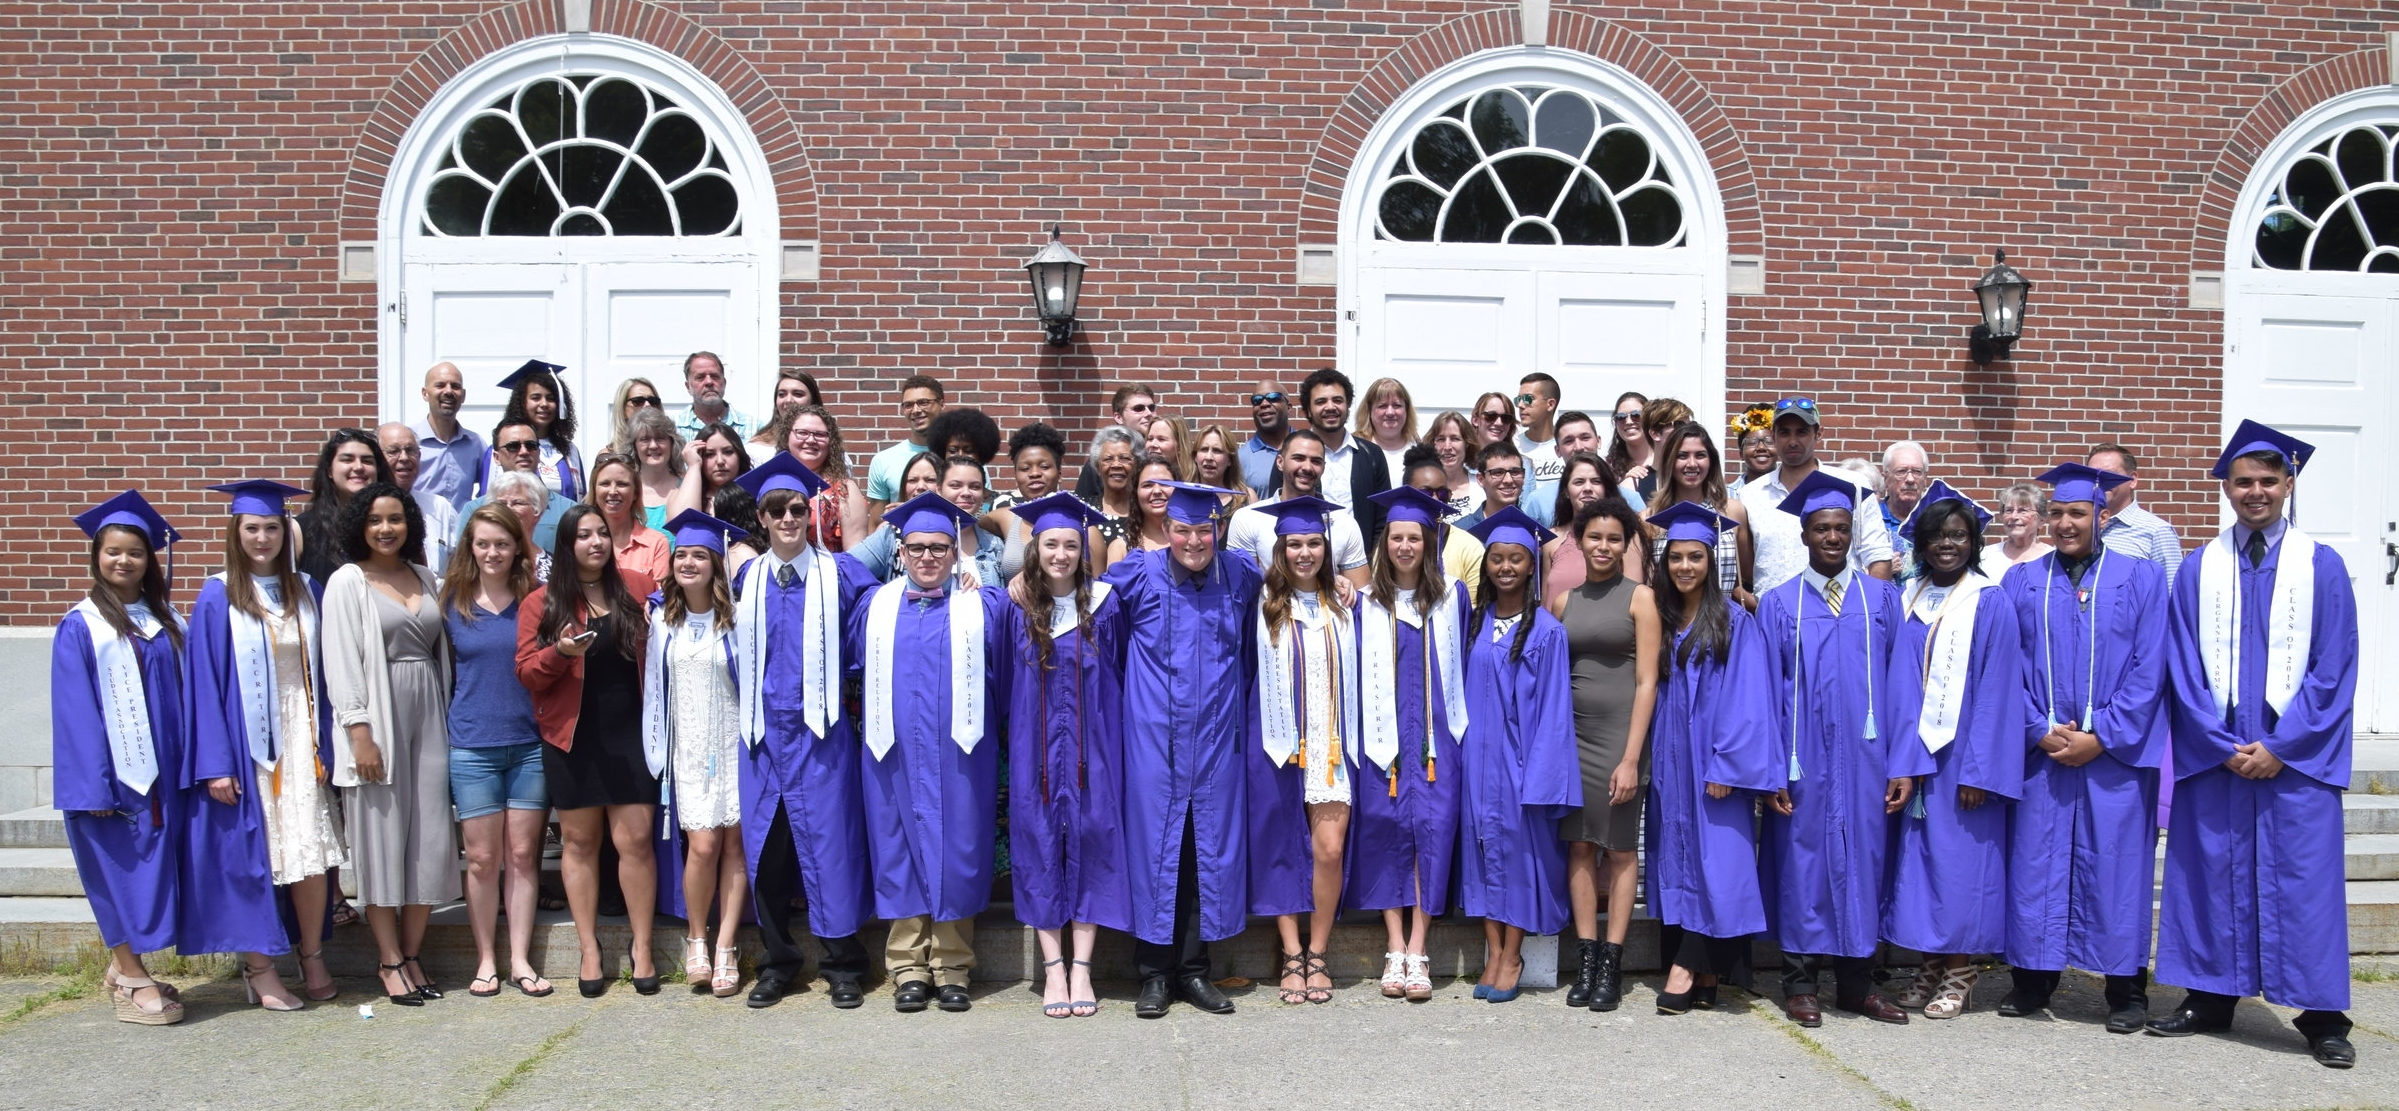 Many alumni attended the graduation ceremonies. We welcome each of these alumni back to SLA at any time.